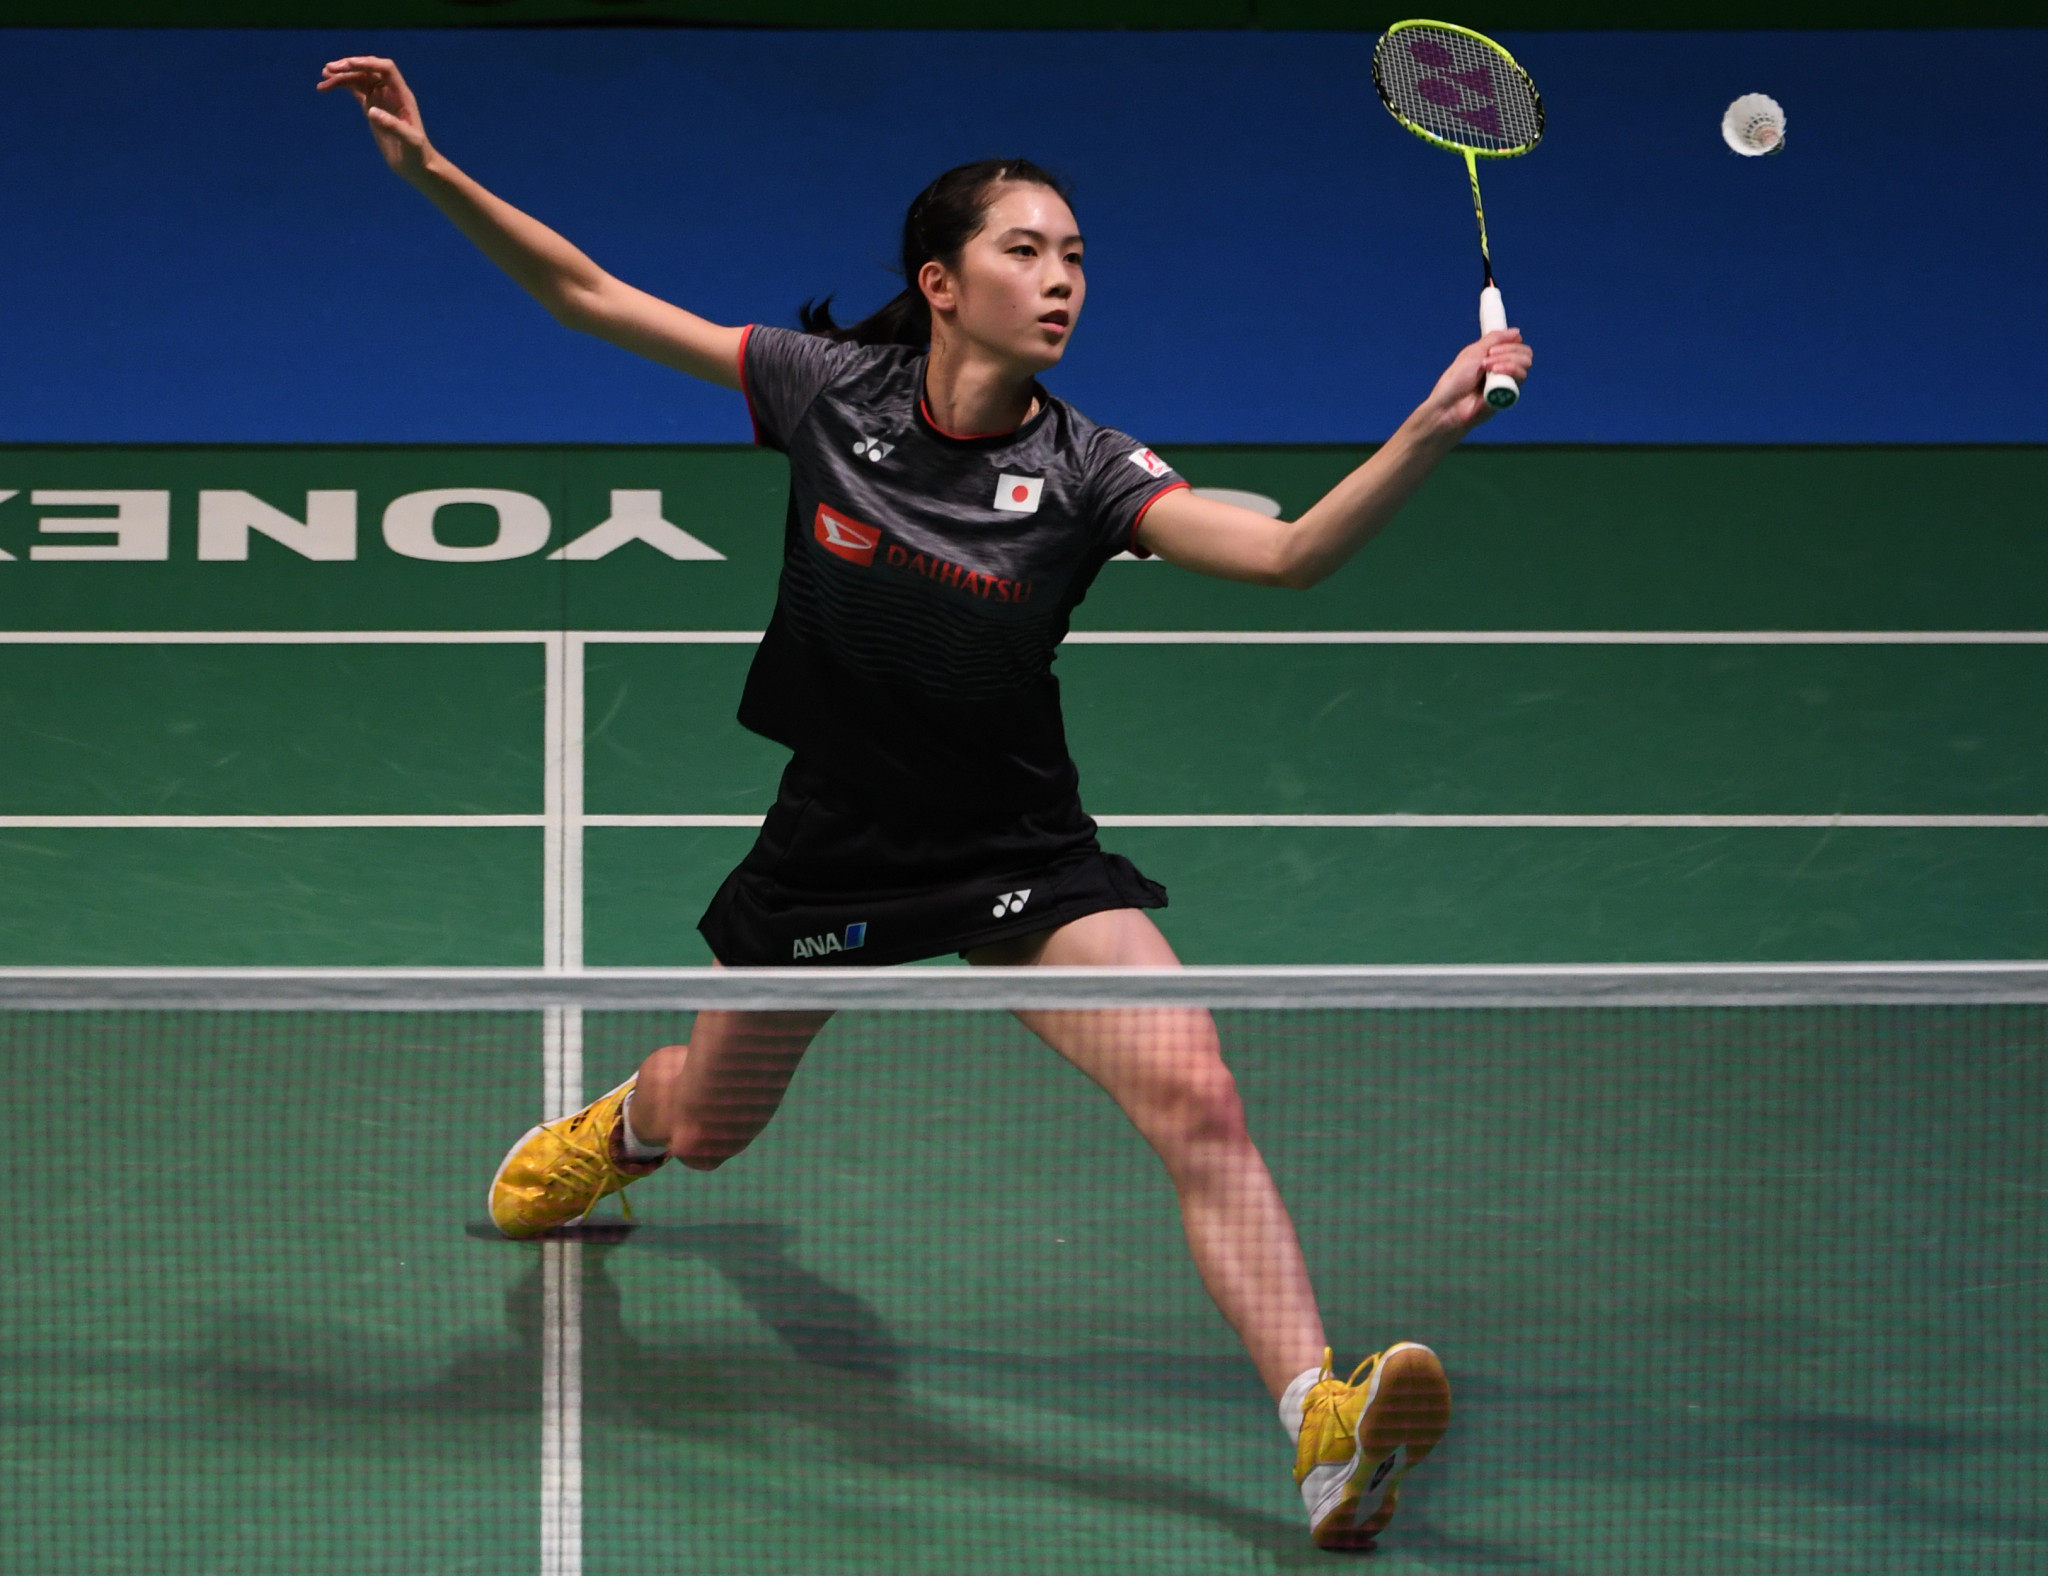 Top seed Aya Ohori safely progressed to the second round of the women's singles event in Macau ©Getty Images